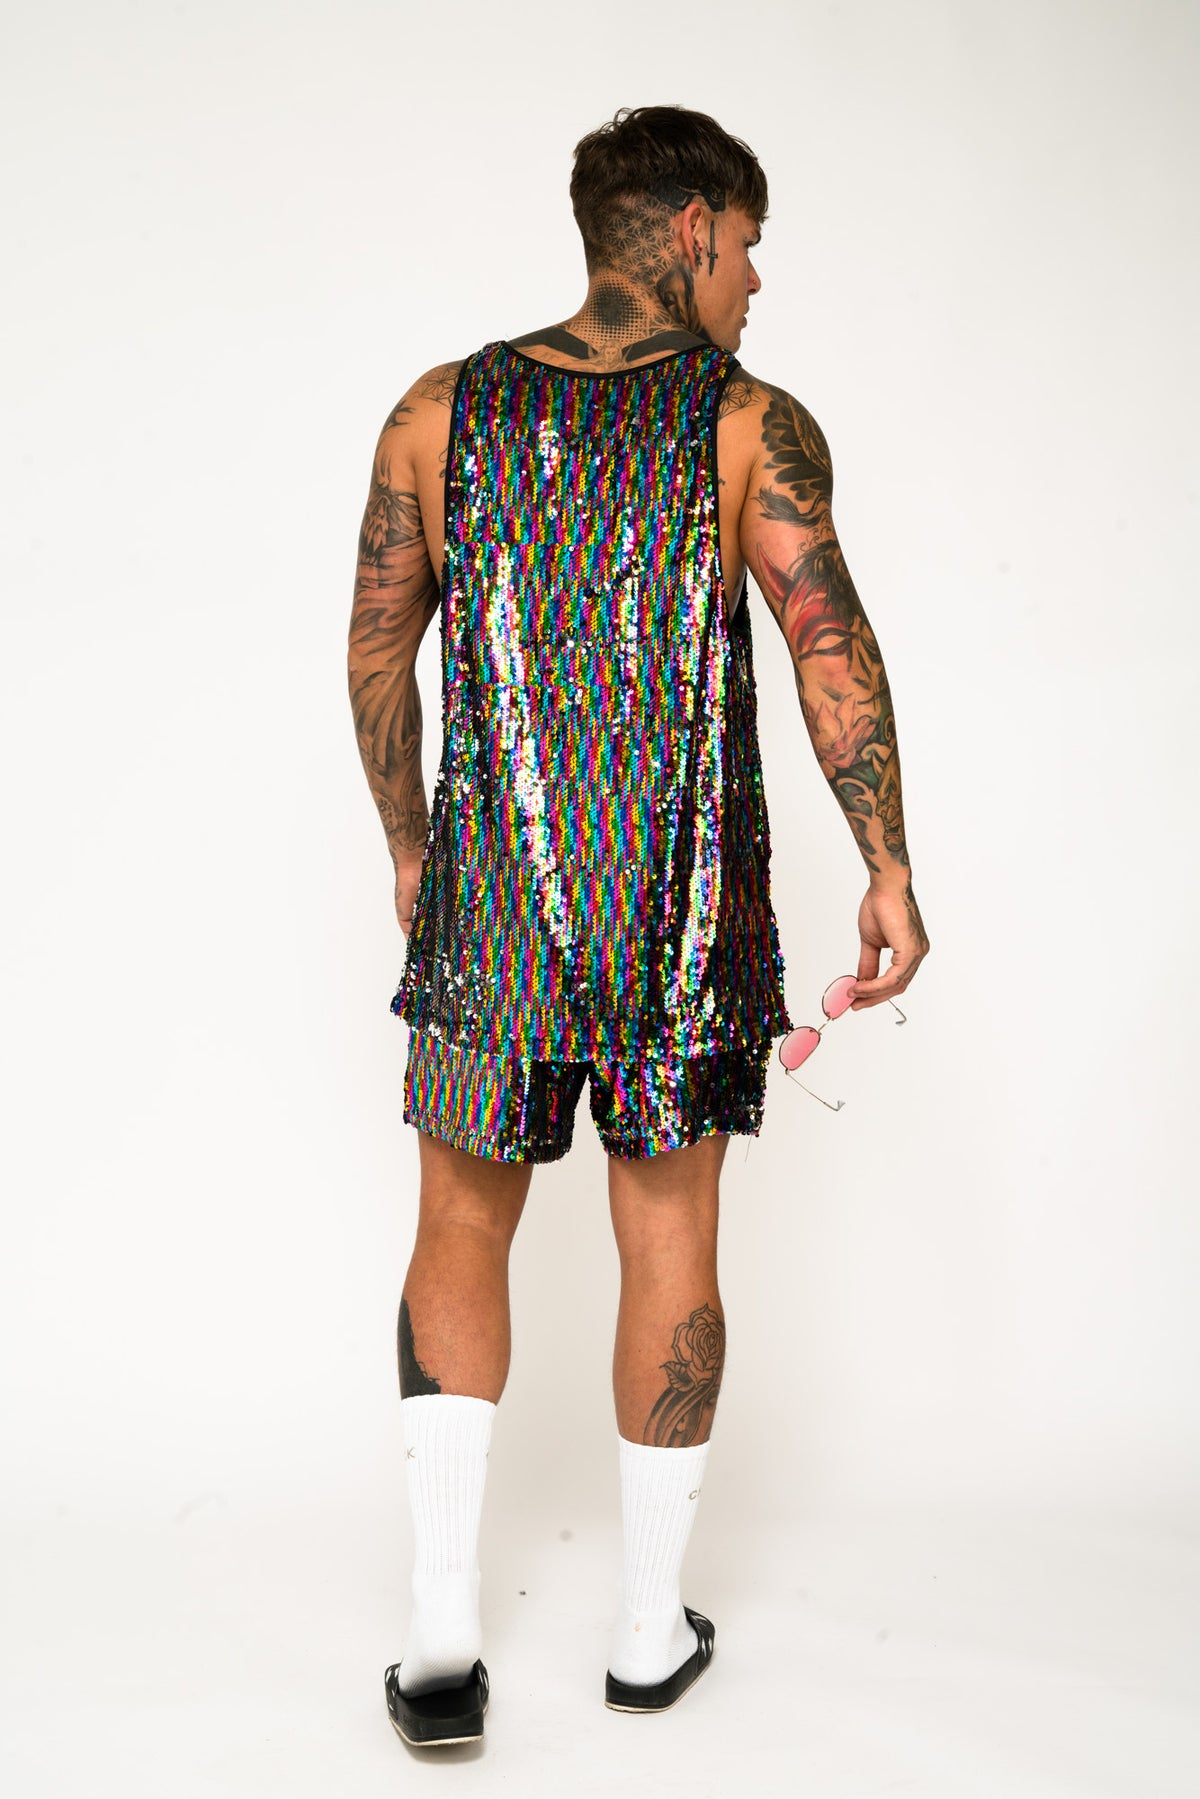 Roadies of 66 Oversized Rainbow Sequin Shorts